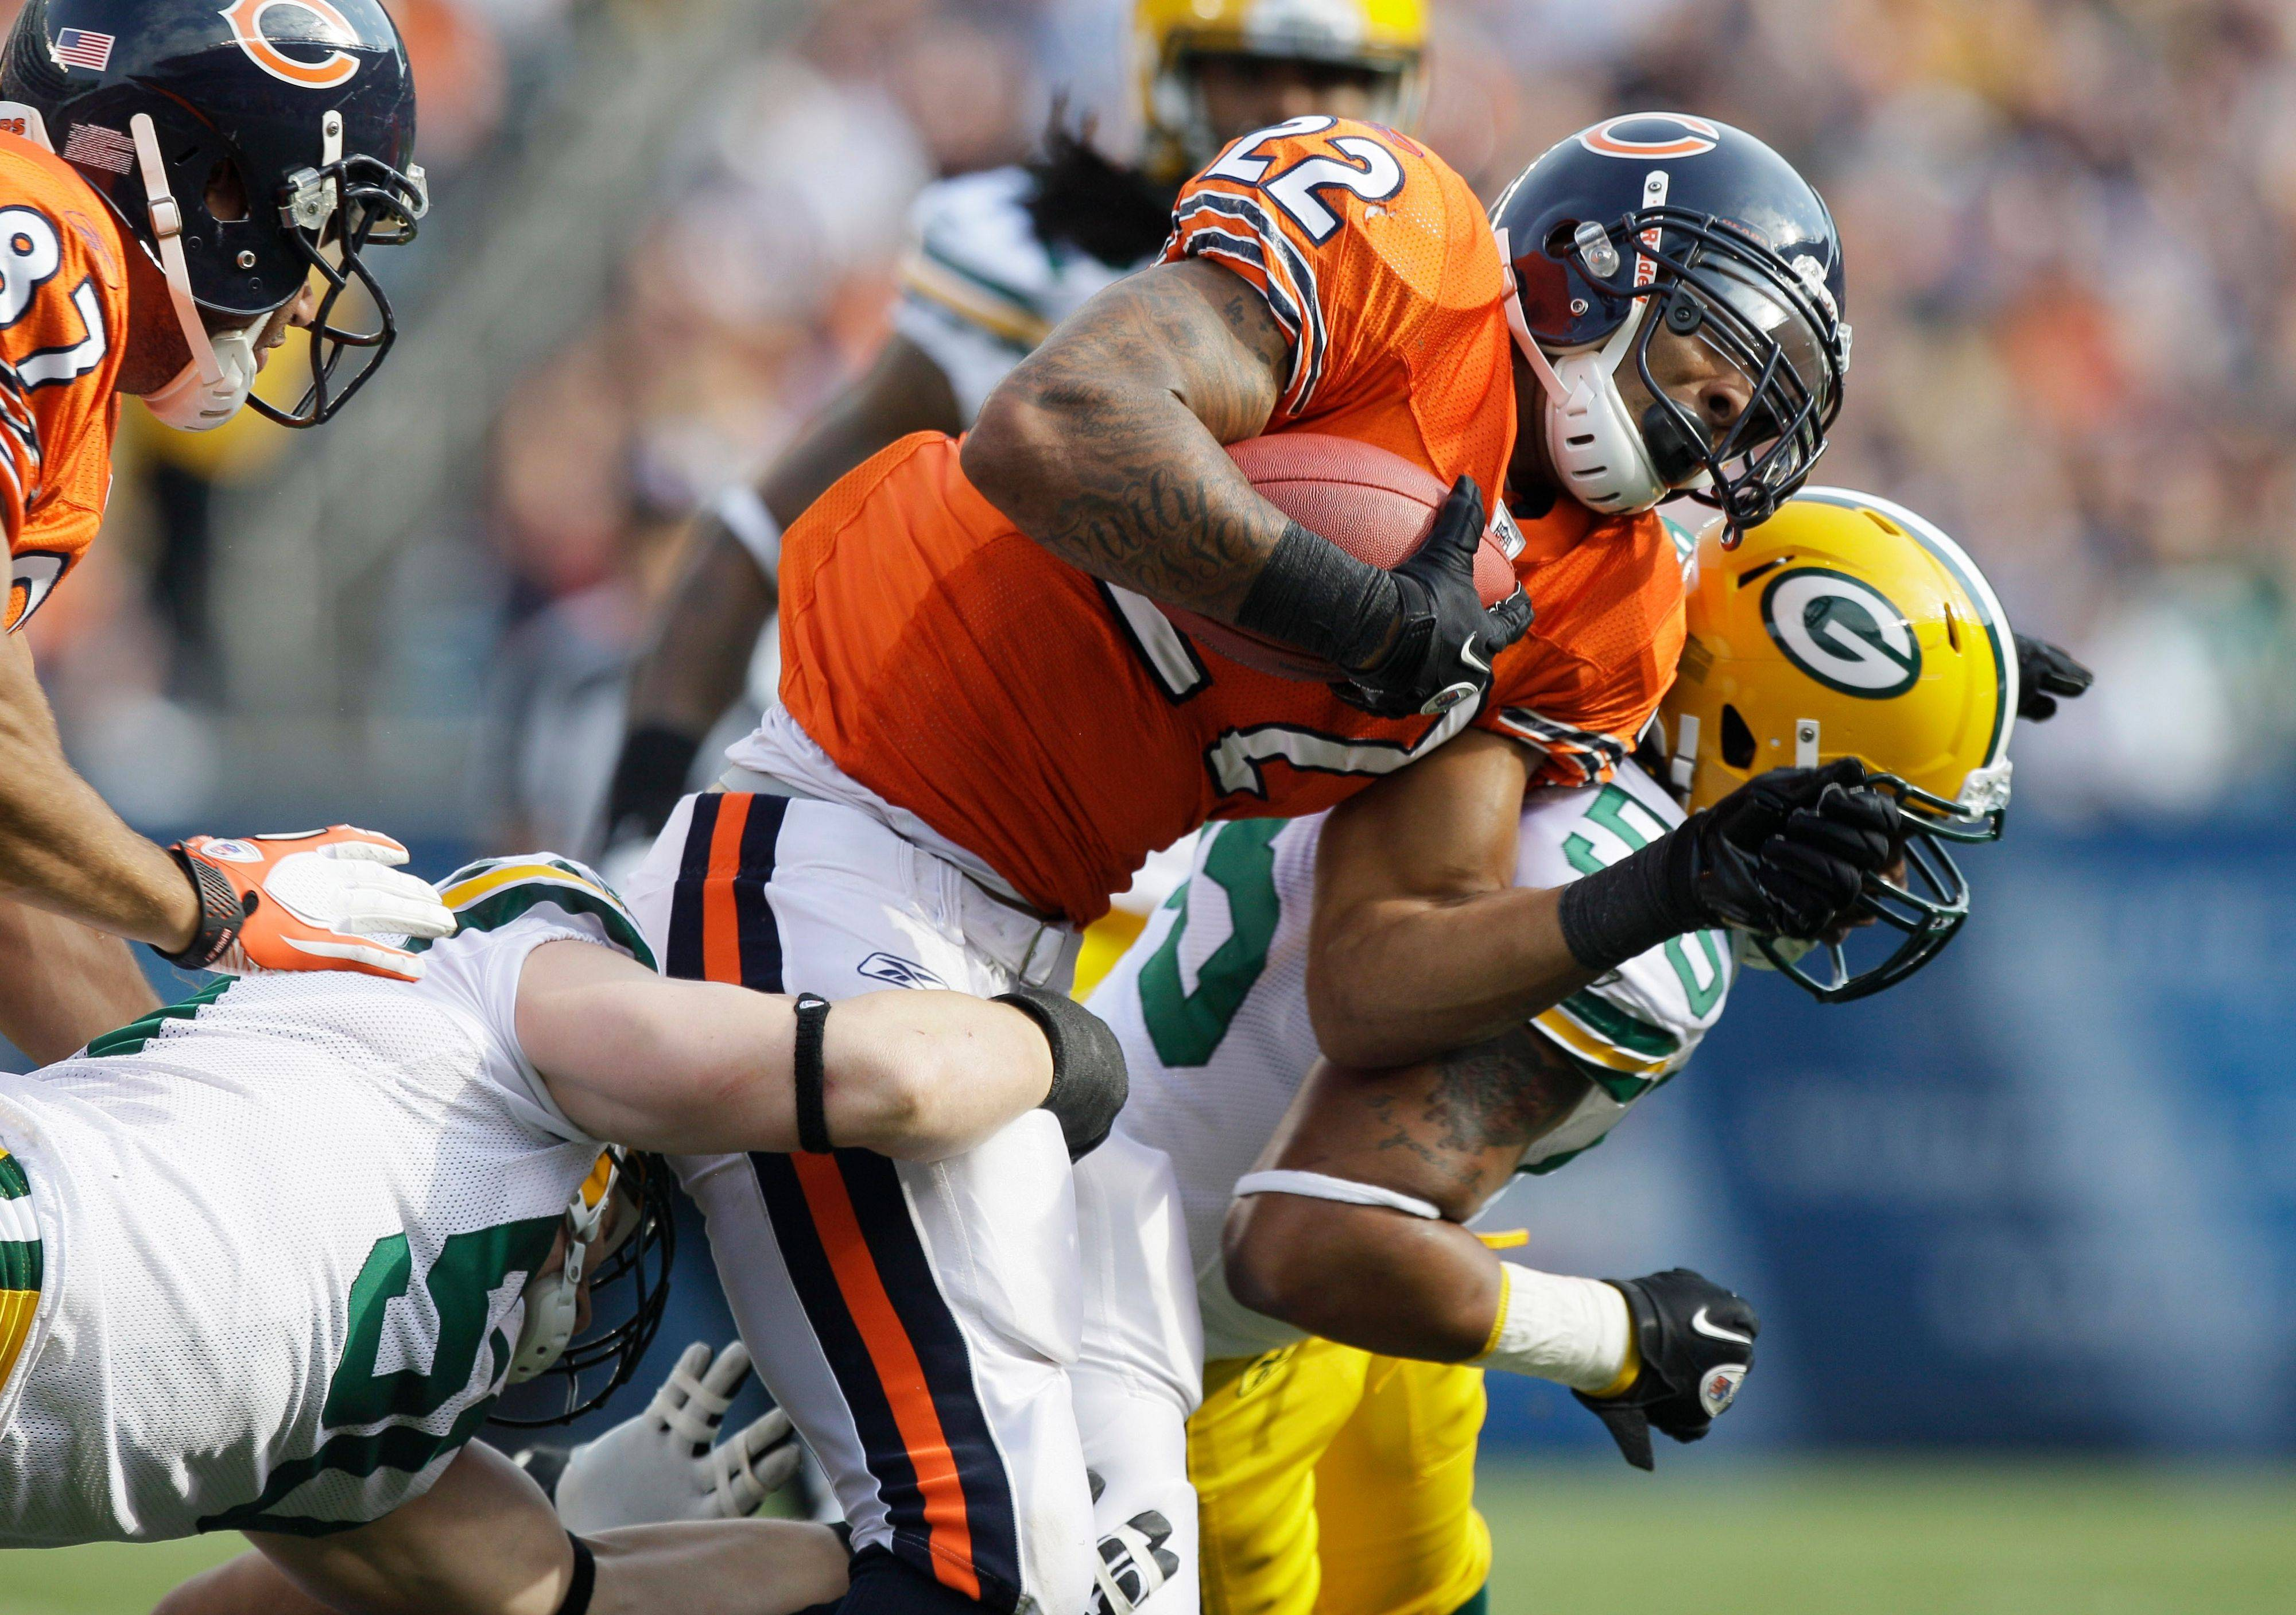 Bears running back Matt Forte is tackled by Packers linebackers A.J. Hawk, left, and Desmond Bishop in the first half Sunday.